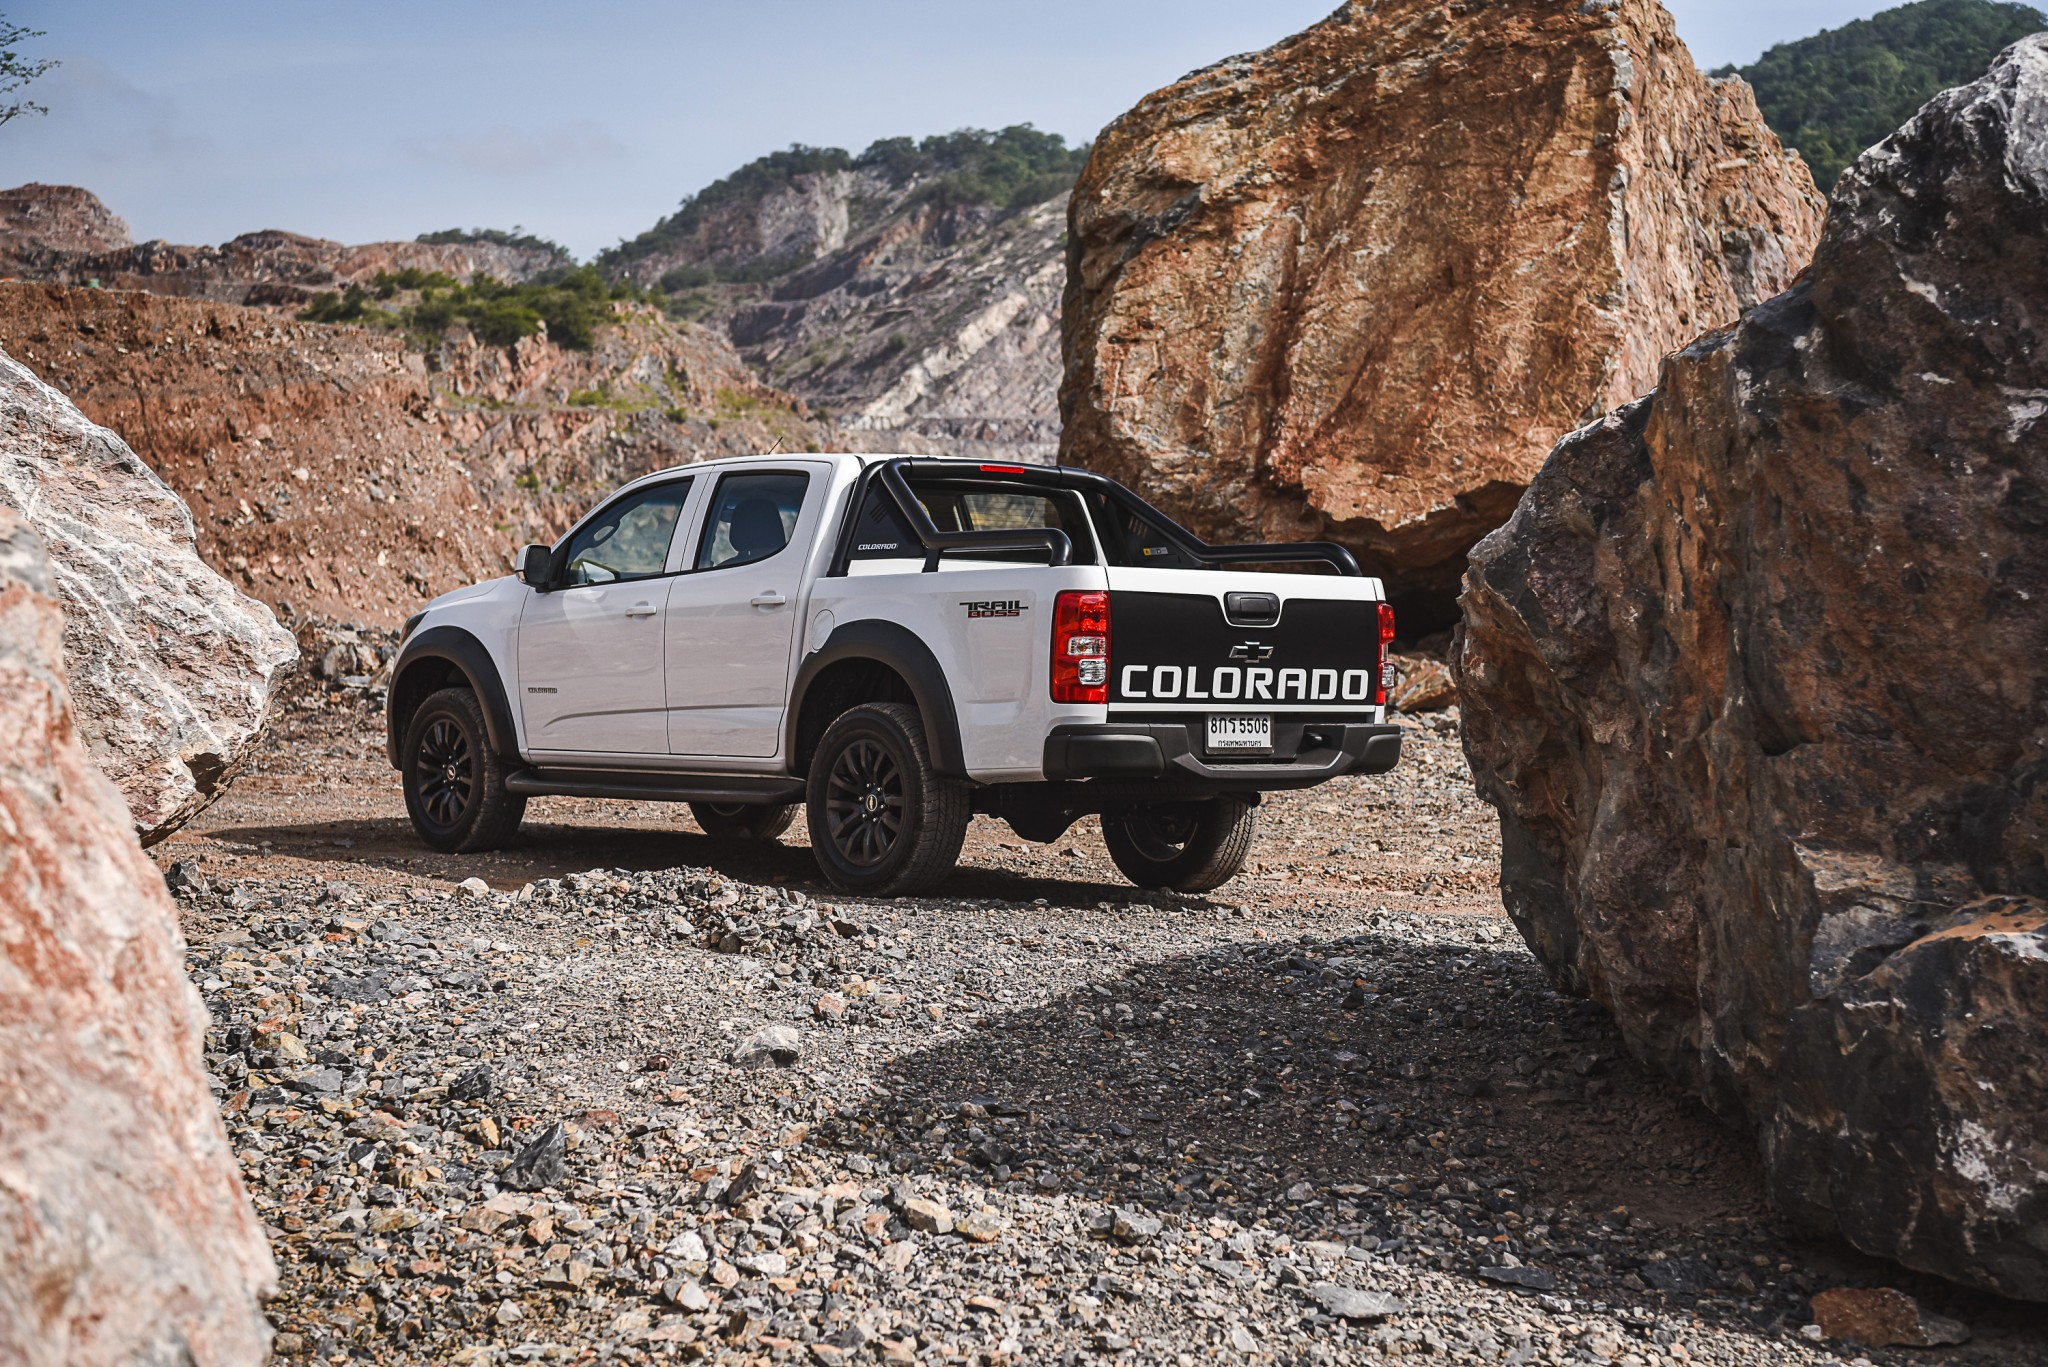 Chevrolet Colorado Trail Boss_R3Q quarry